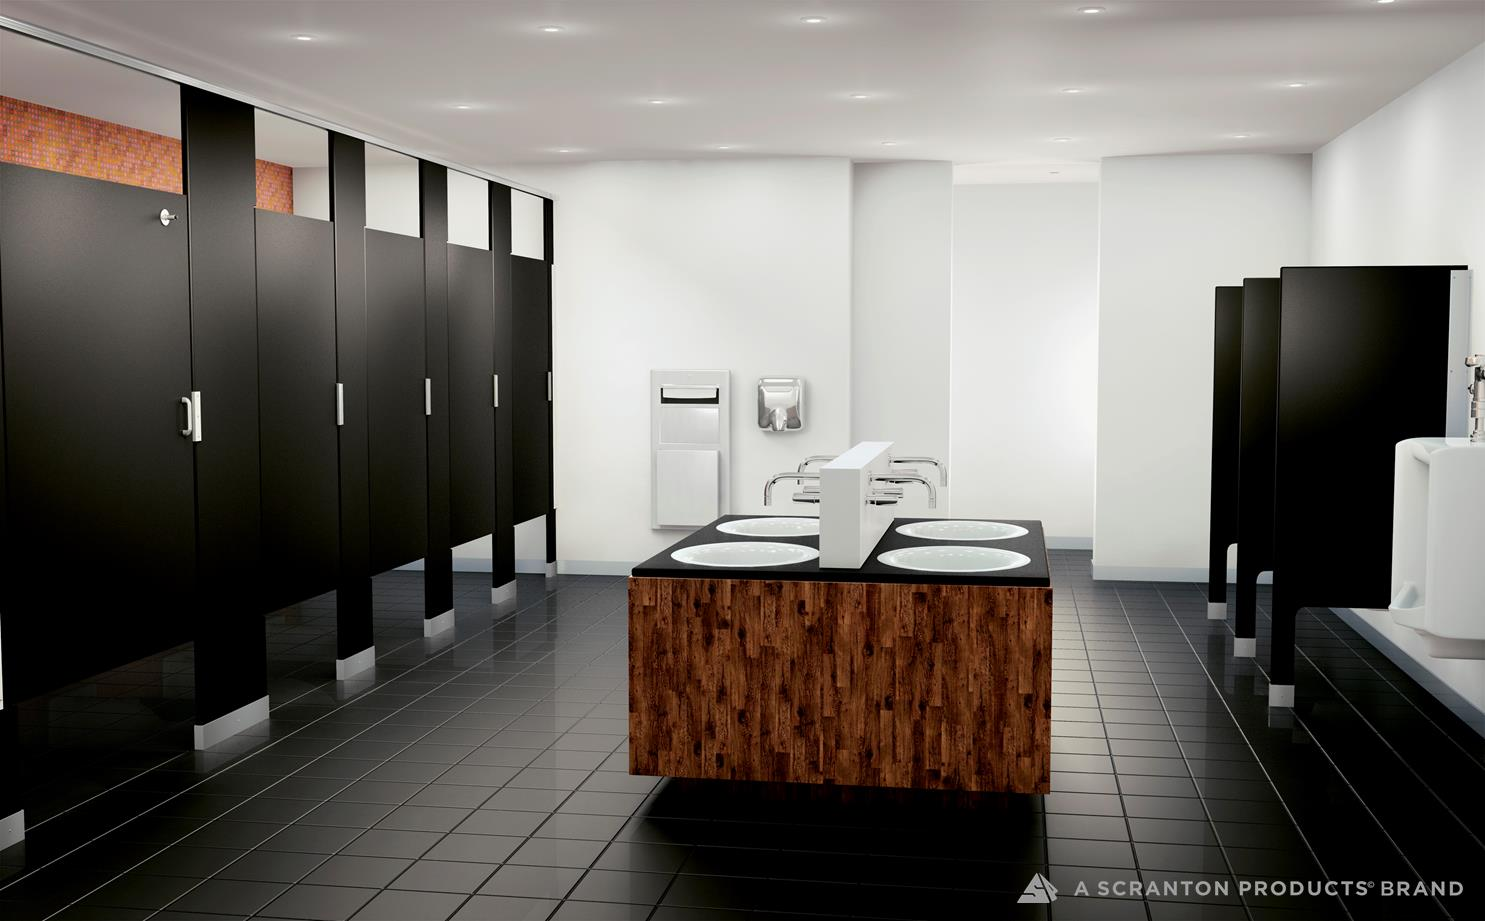 Bathroom Partitions Knoxville Tn t&m specialties